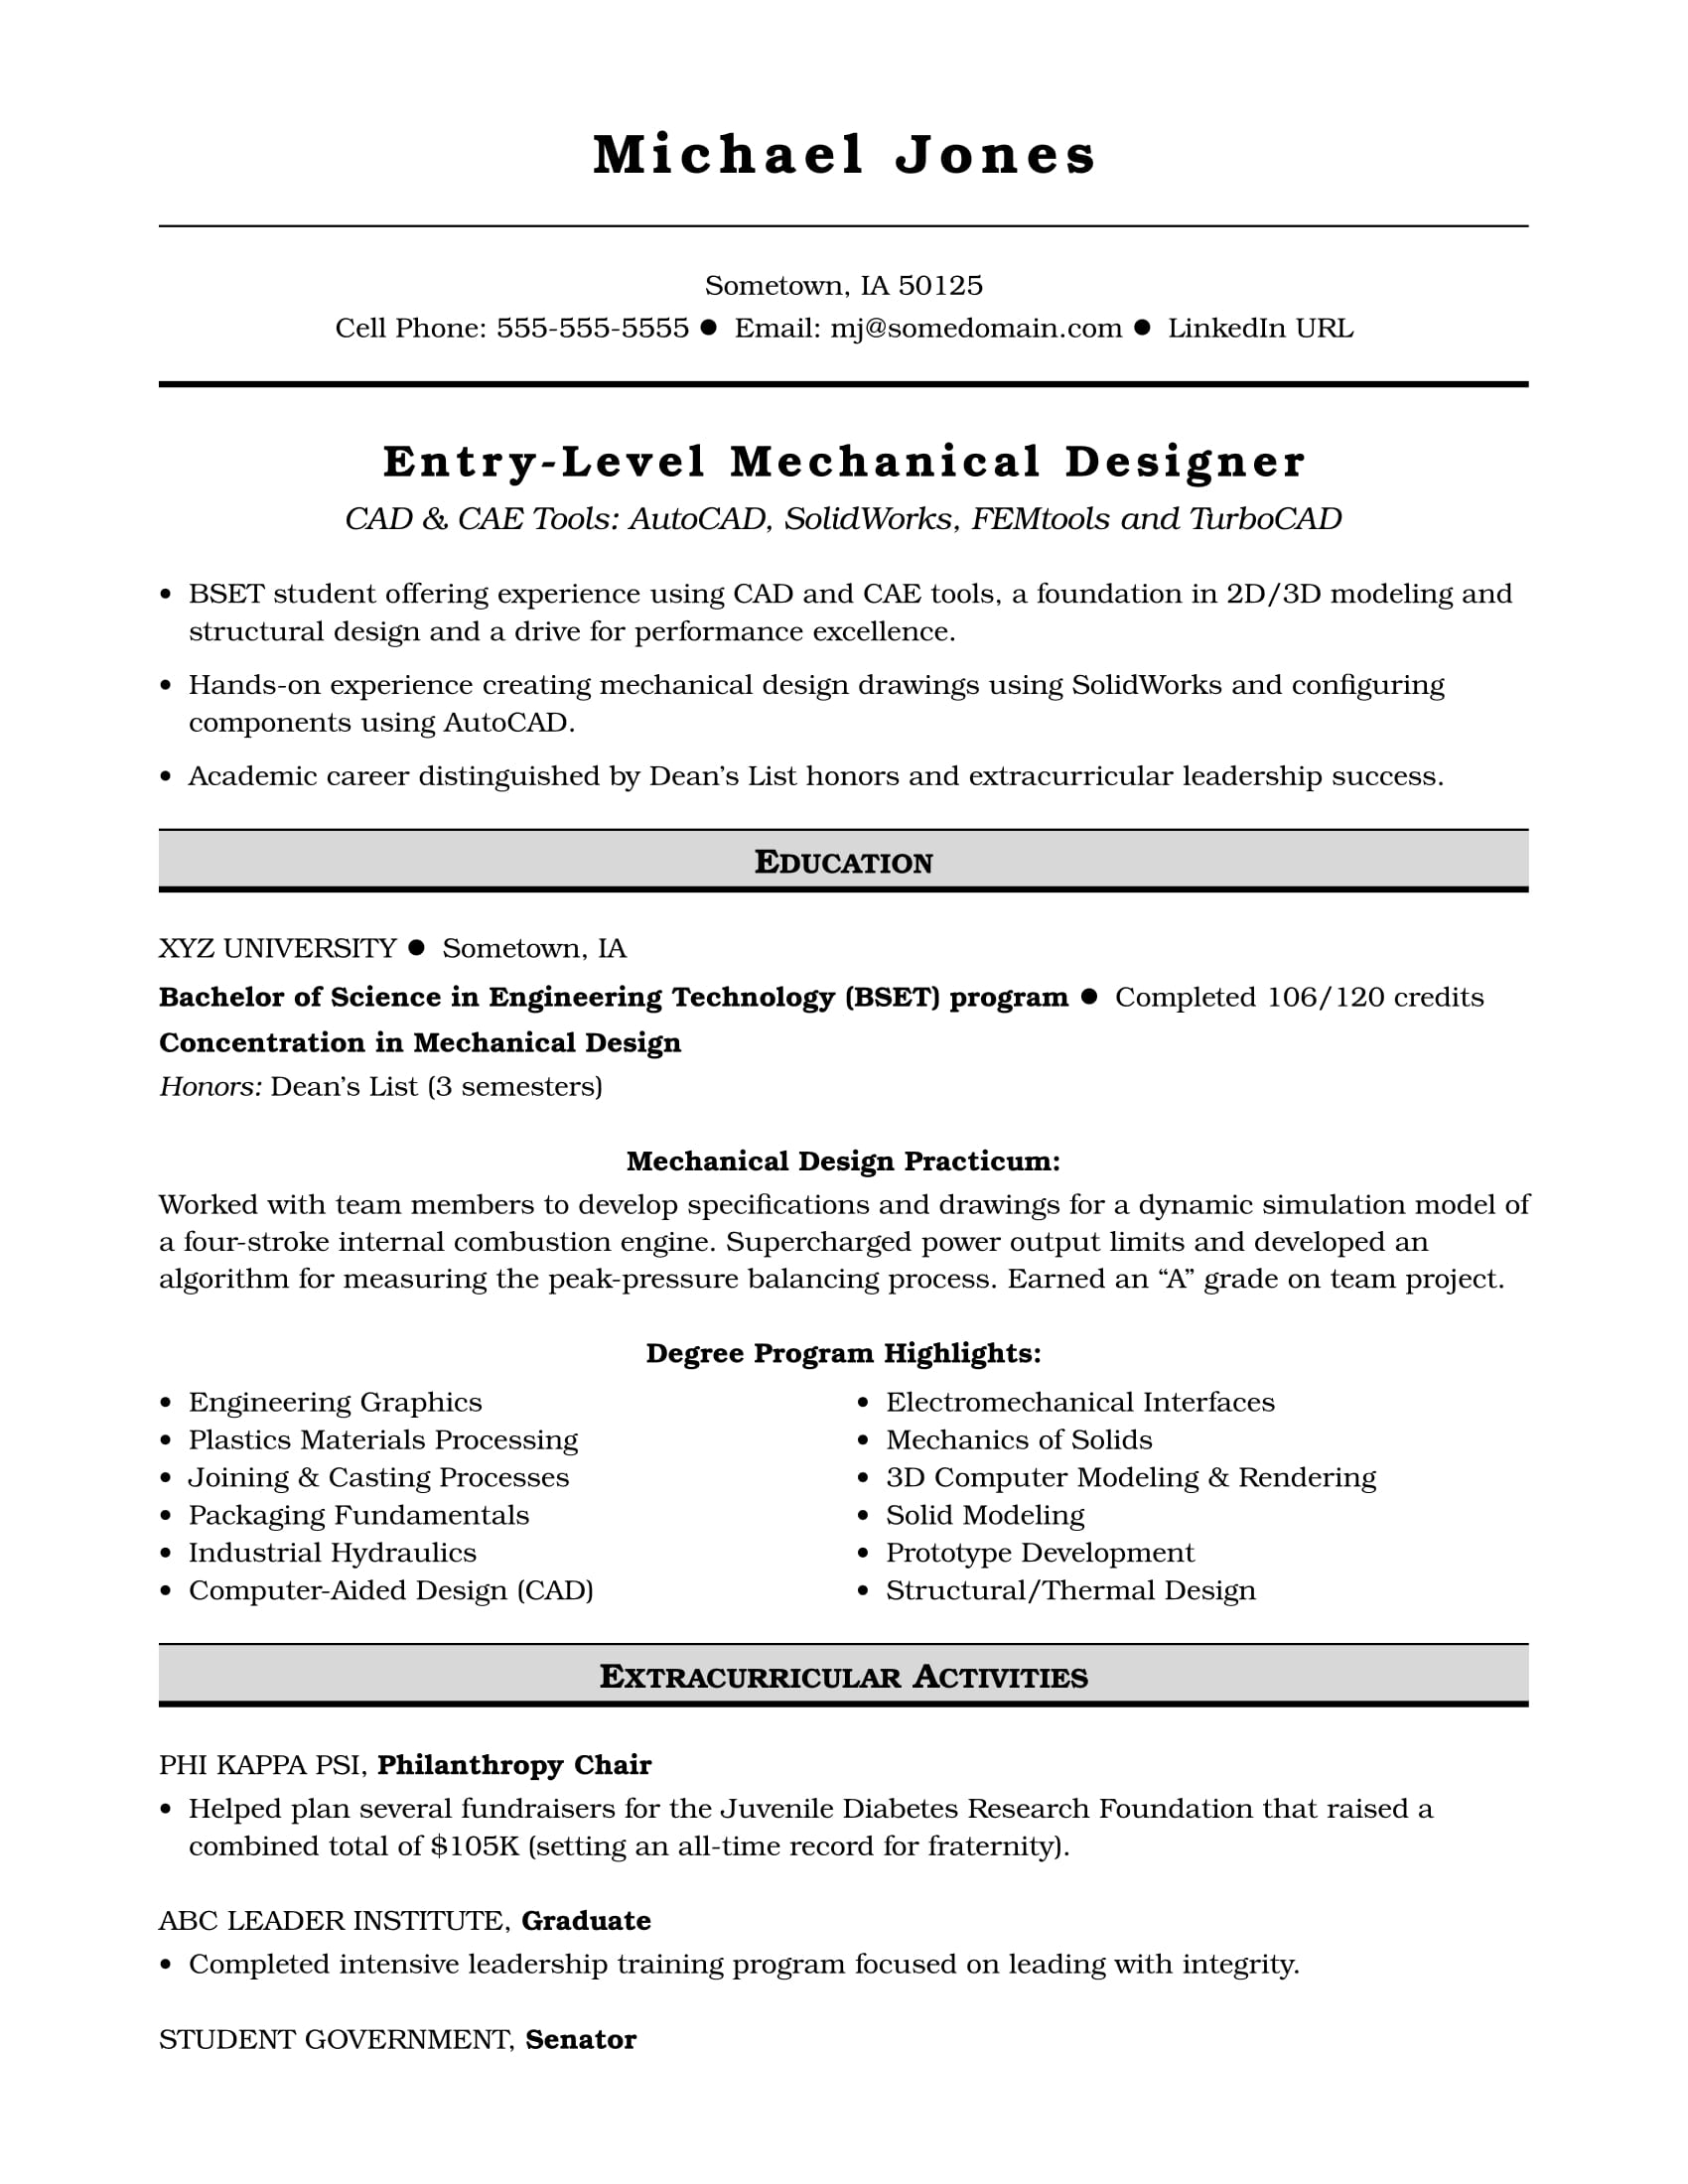 Sample Resume for an Entry Level Mechanical Designer Monstercom